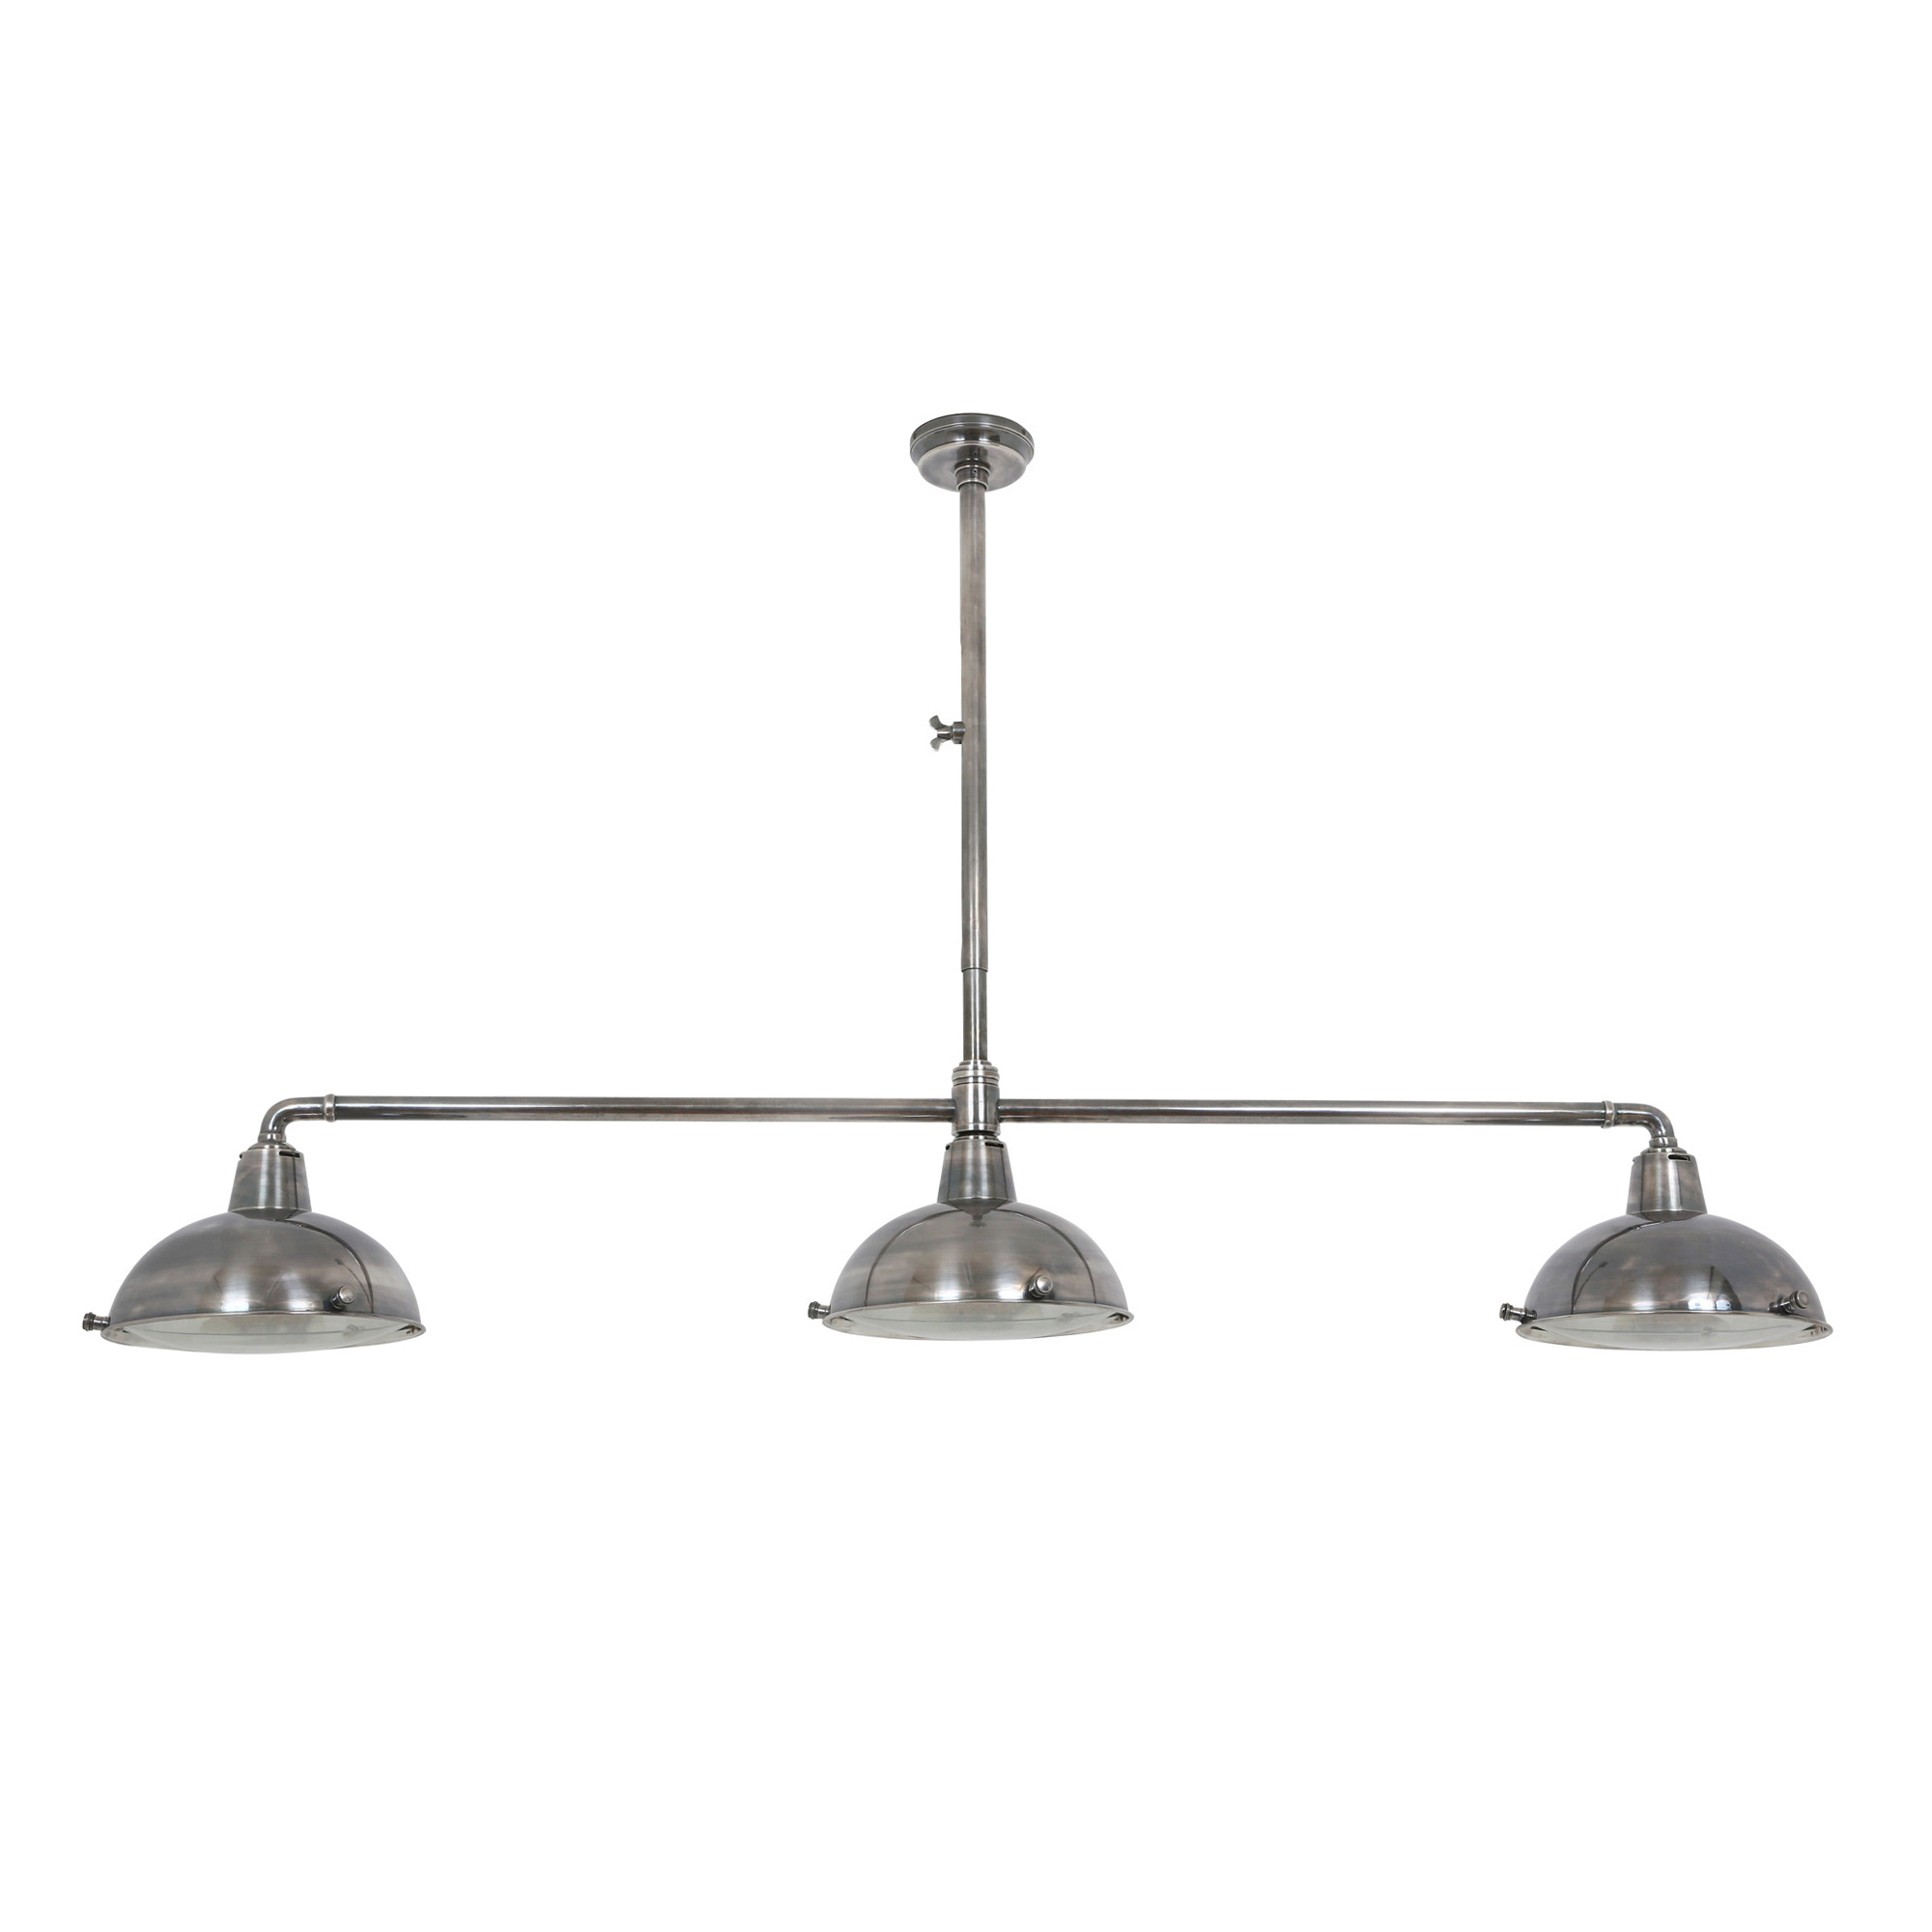 Hanglamp Billiards 3 silver